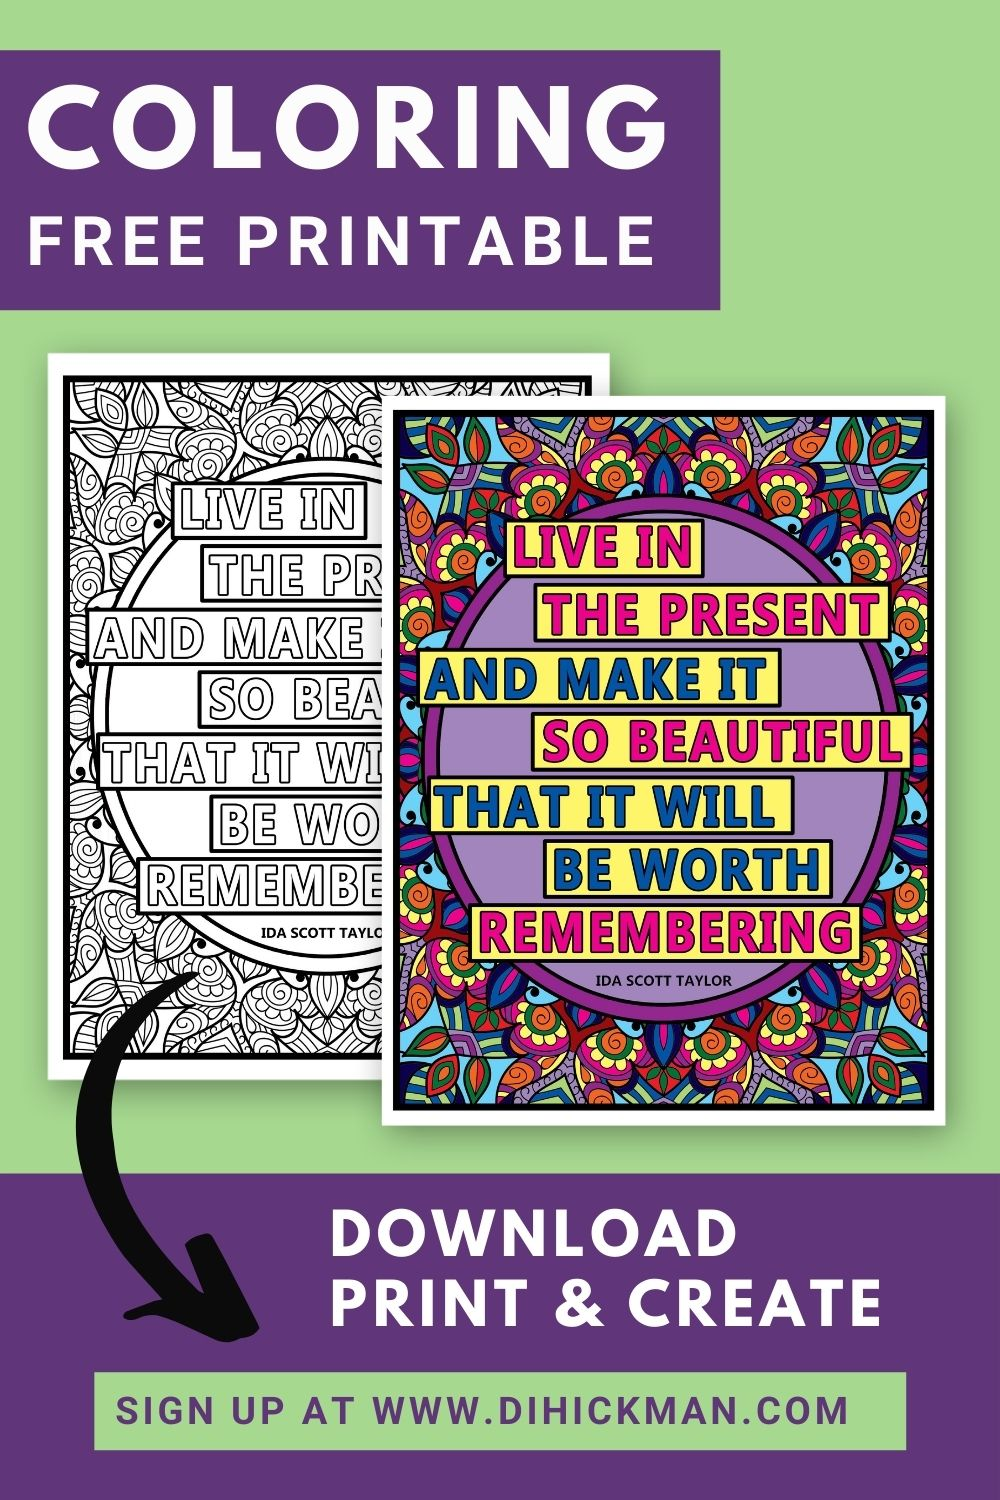 Coloring free printable. live in the present and make it so beautiful that it will be worth remembering. Download print & create.